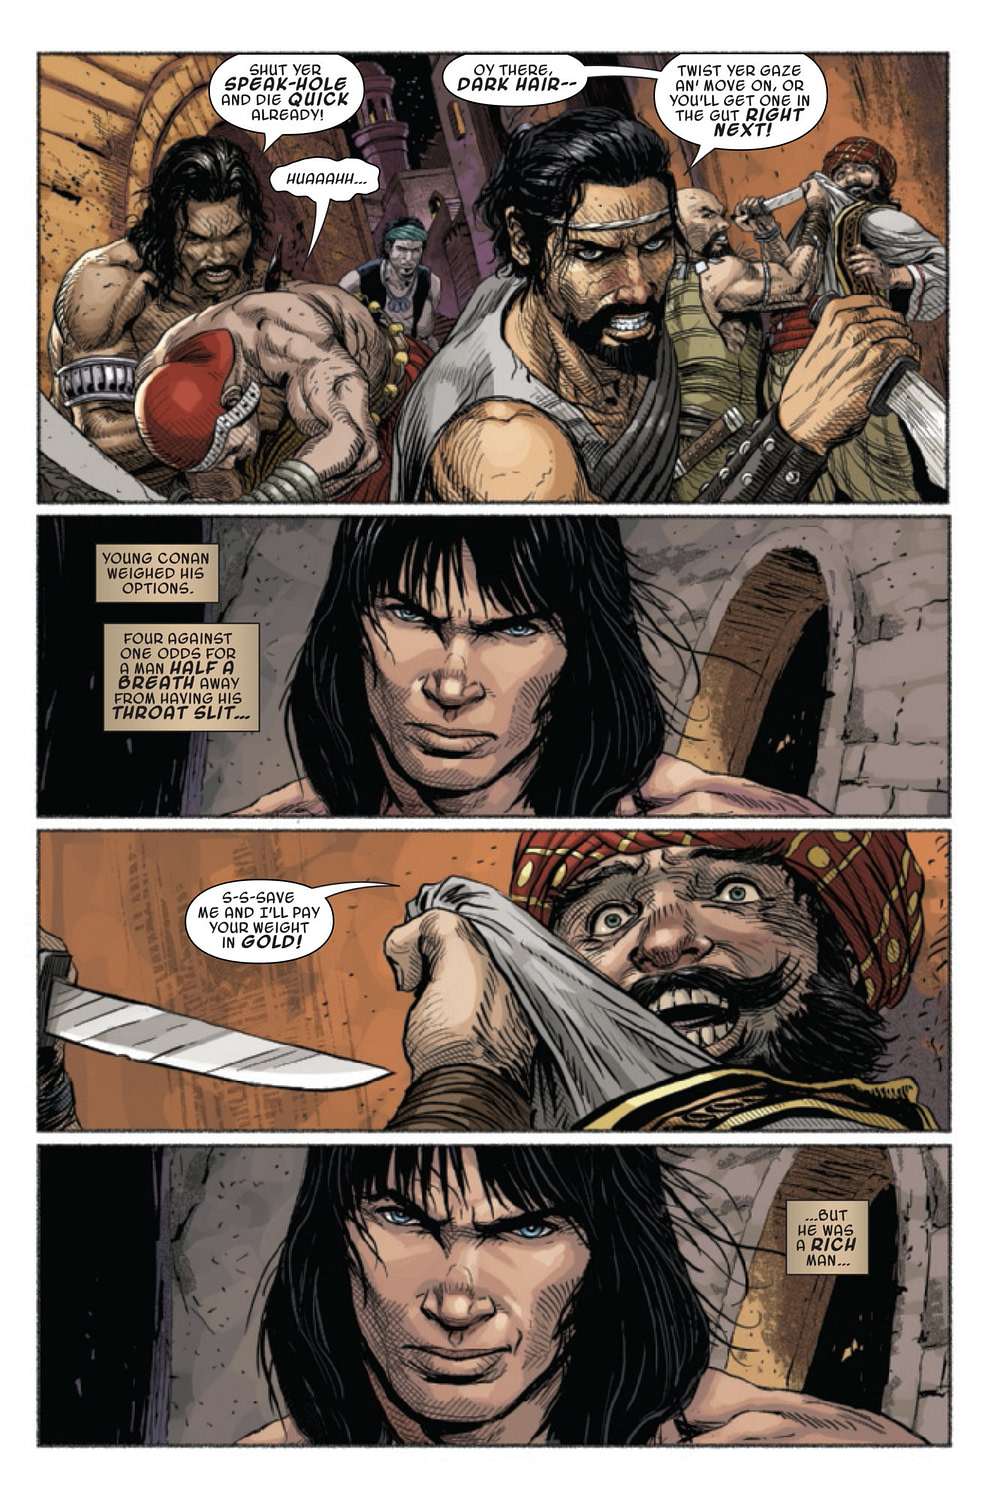 Savage Sword of Conan #7: Shadizarian Wealth Inequality [Preview]